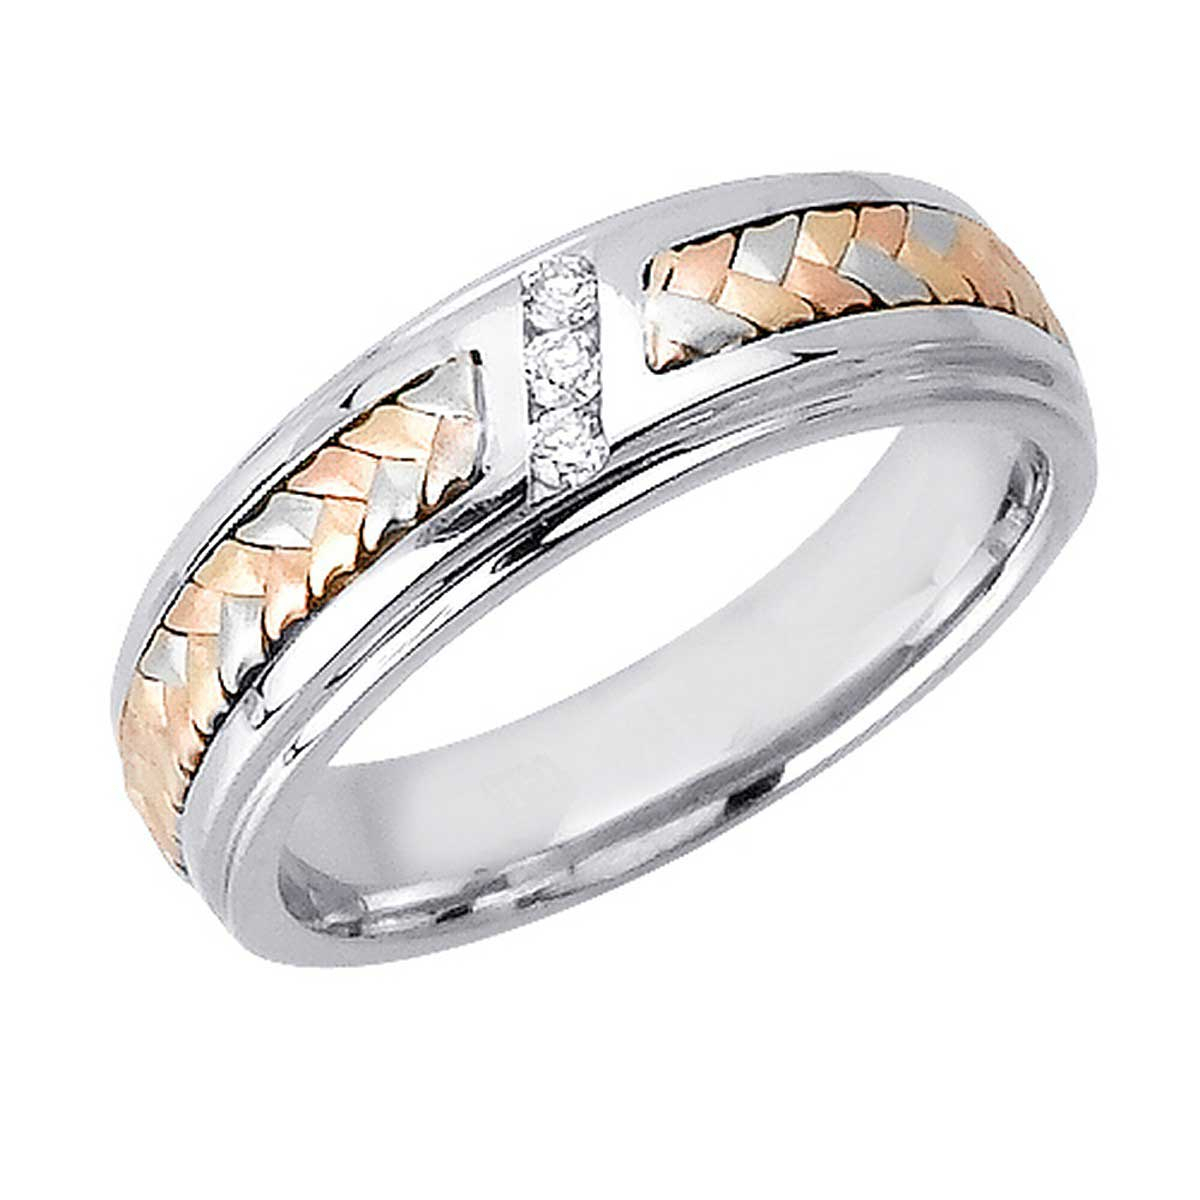 09ct Tcw 14k Tri Color Gold Basket Braid Band 6mm 3002543 For 2019 Diamond Braid Anniversary Bands In White Gold (View 10 of 25)